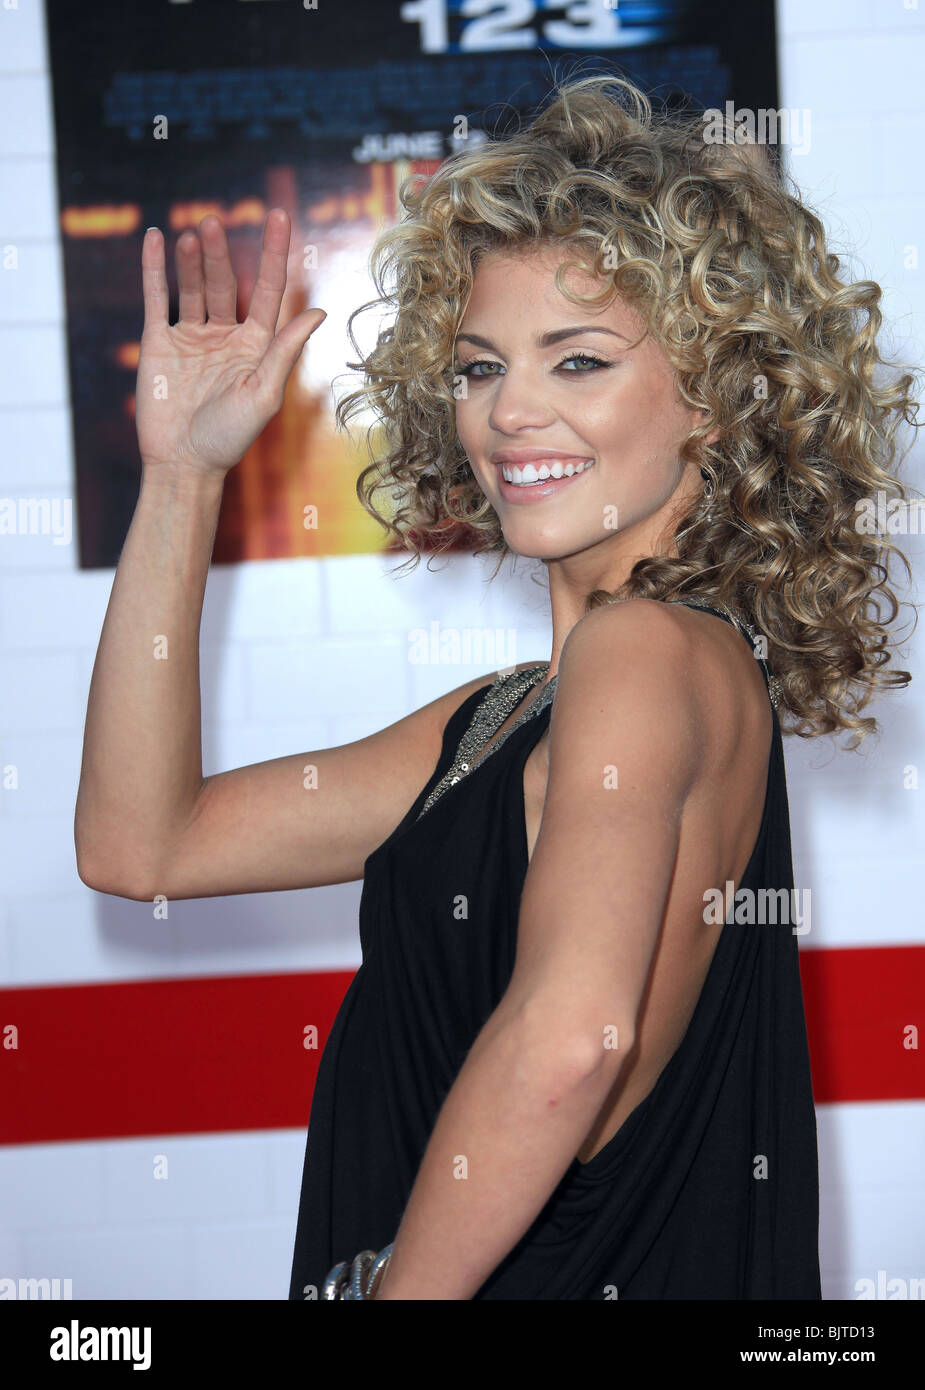 ANNALYNNE MCCORD THE TAKING OF PELHAM 123 LOS ANGELES PREMIERE WESTWOOD CA USA 04 June 2009 - Stock Image